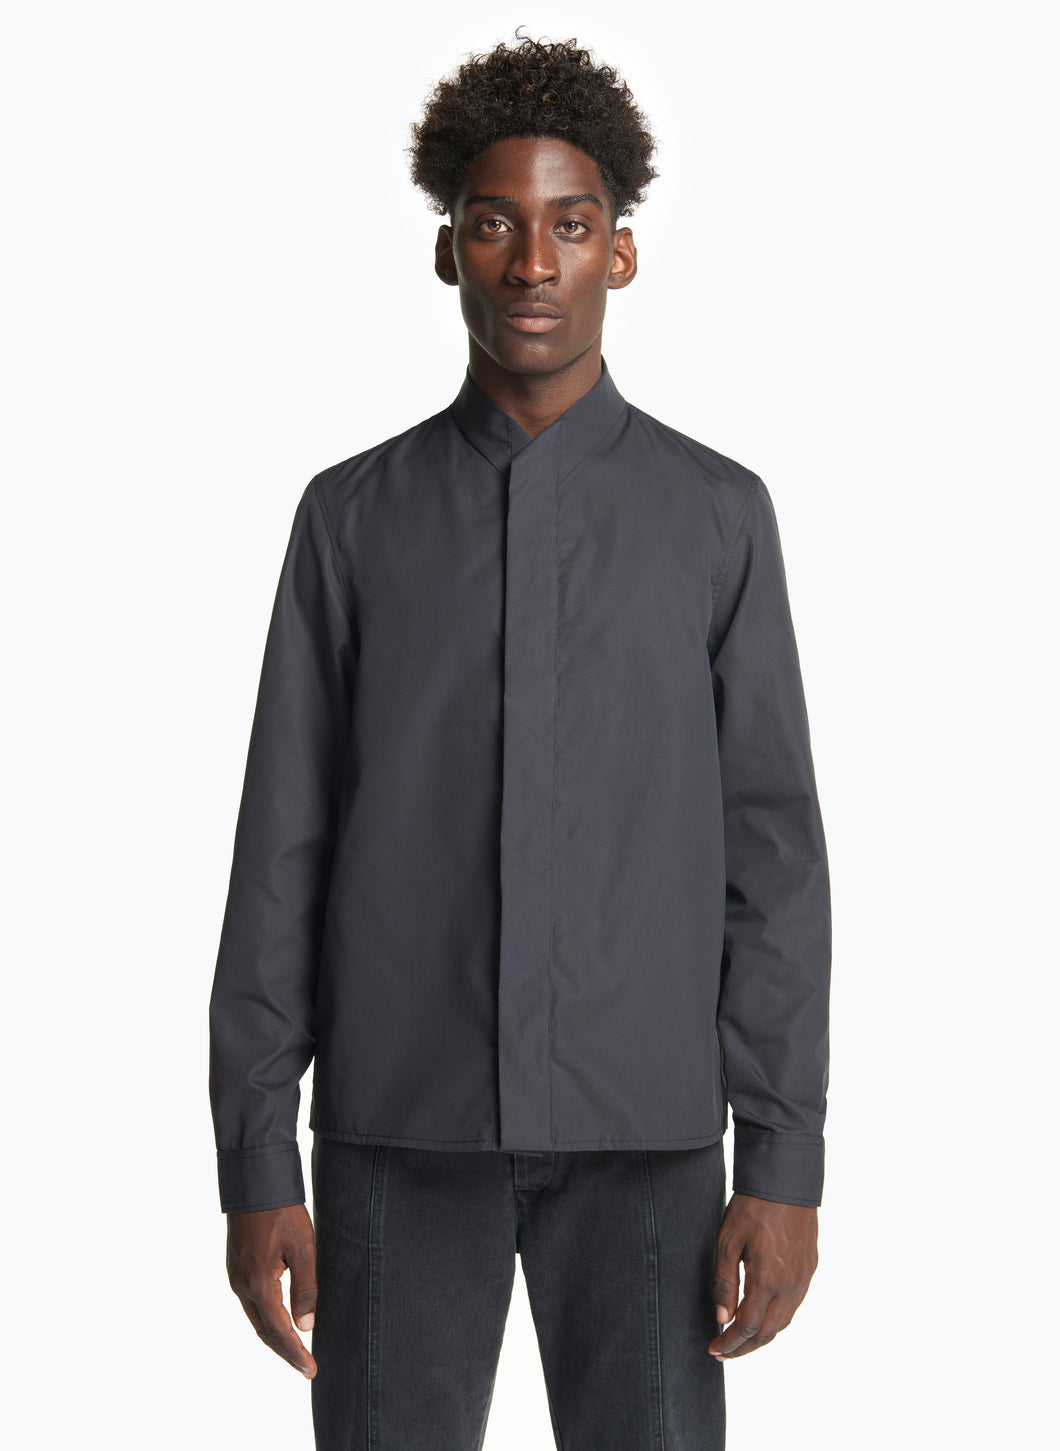 Standing Collar Shirt in Black Poplin